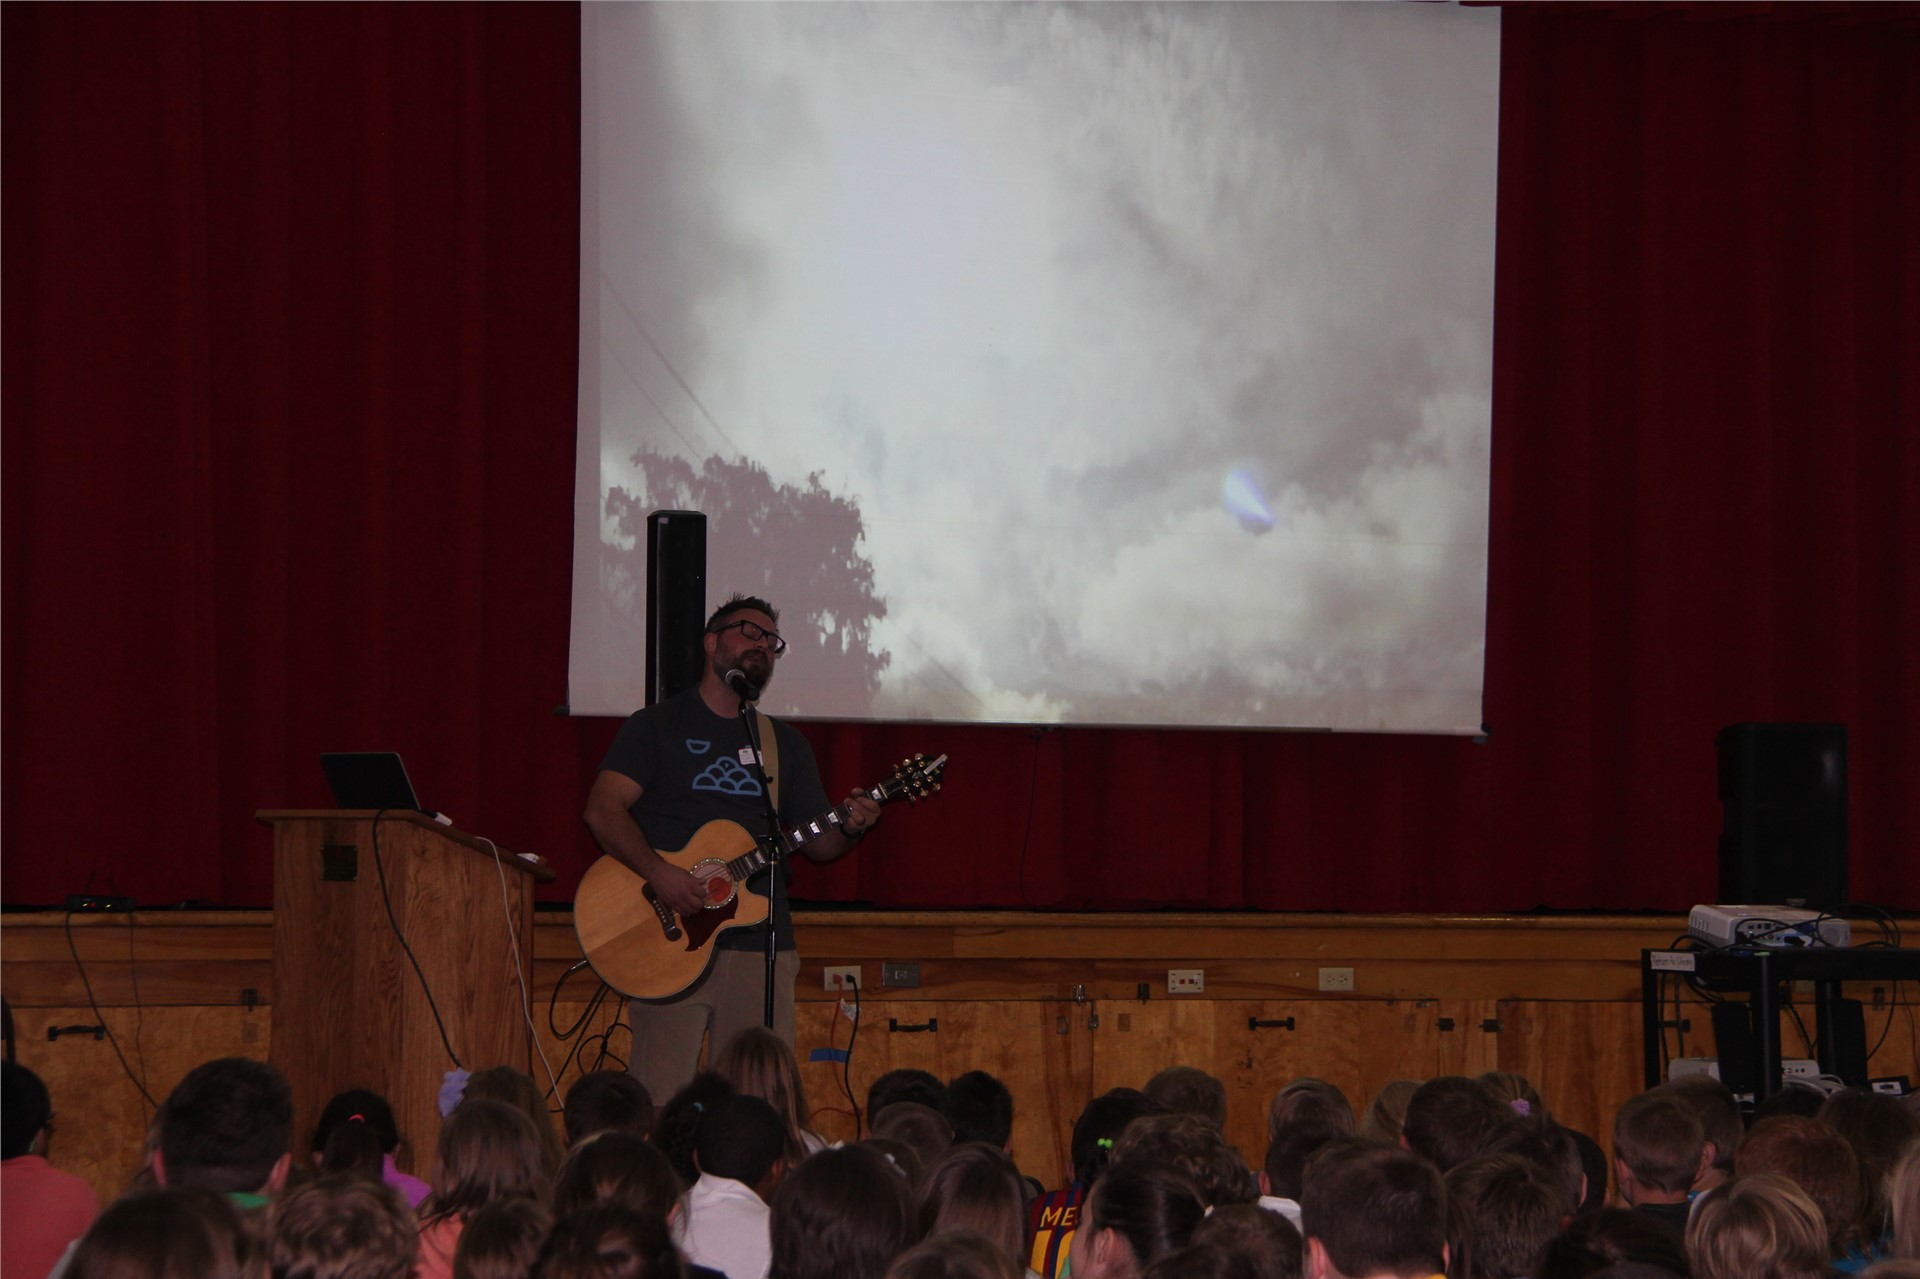 jared campbell singing in front of screen wide shot